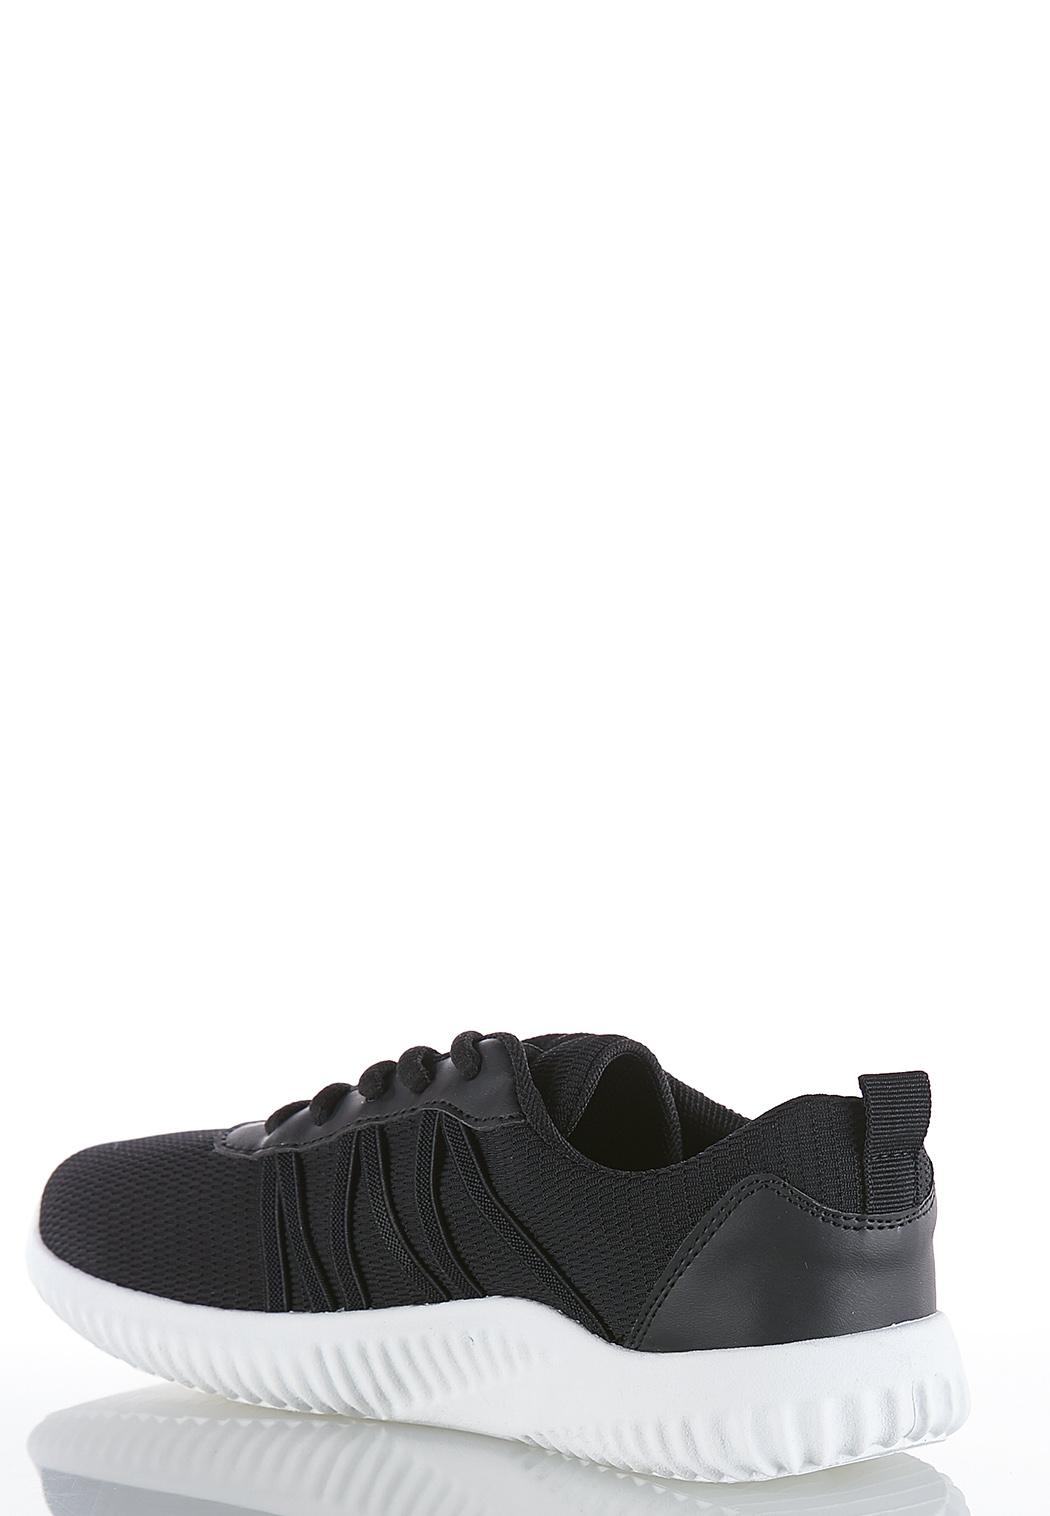 Lace Up Mesh Sneakers (Item #43838630)